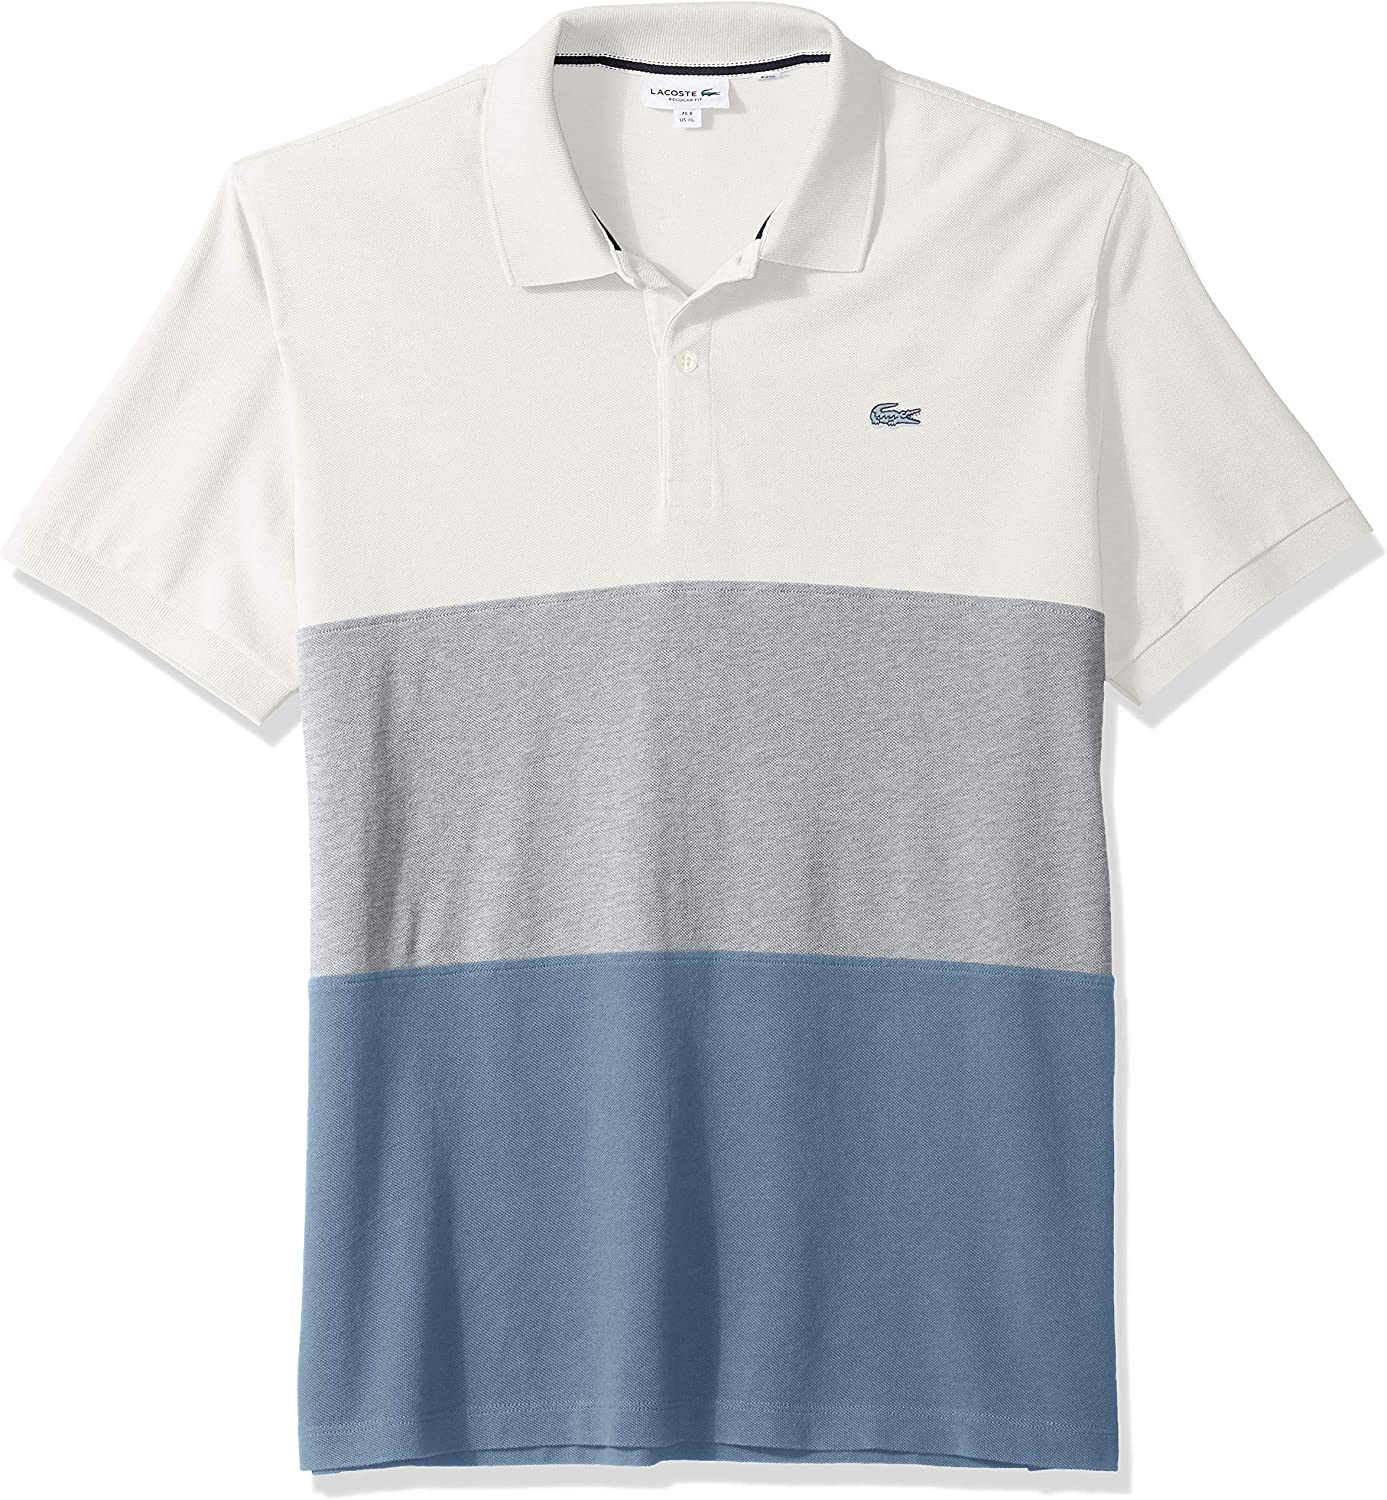 Lacoste Mens Short Sleeve Reg Fit Blue Pack Colorblock Polo